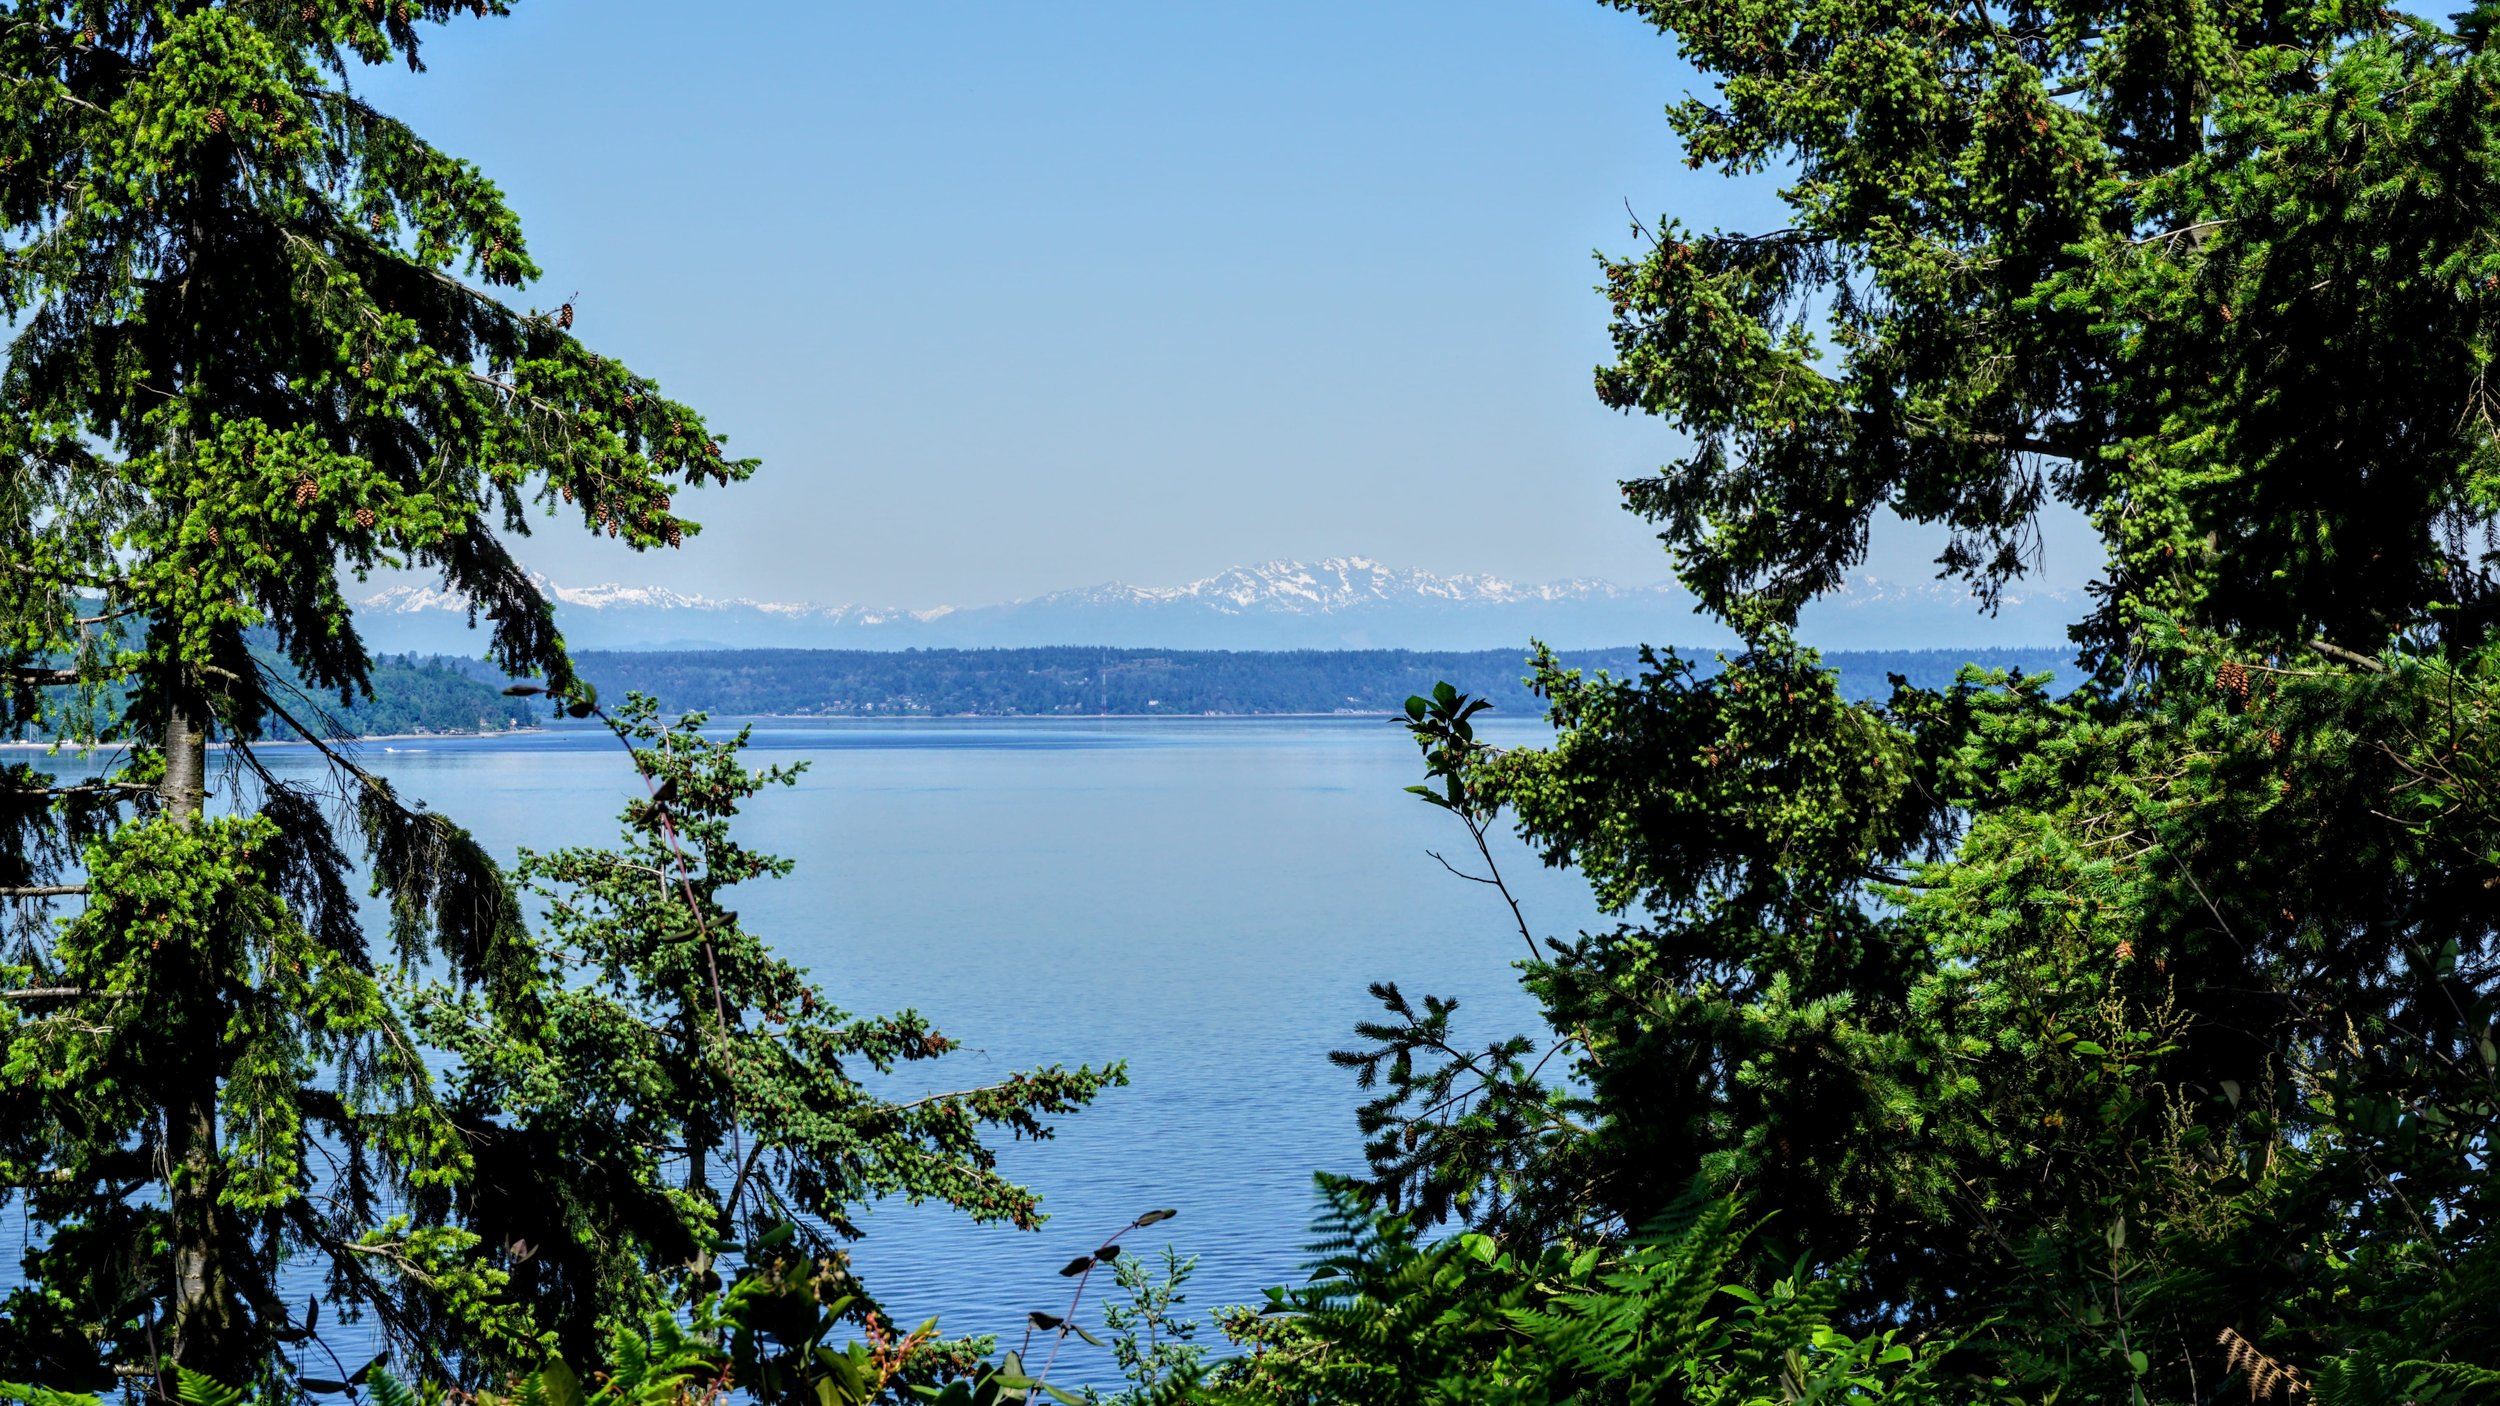 Olympic Mountains seen from Saltwater State Park